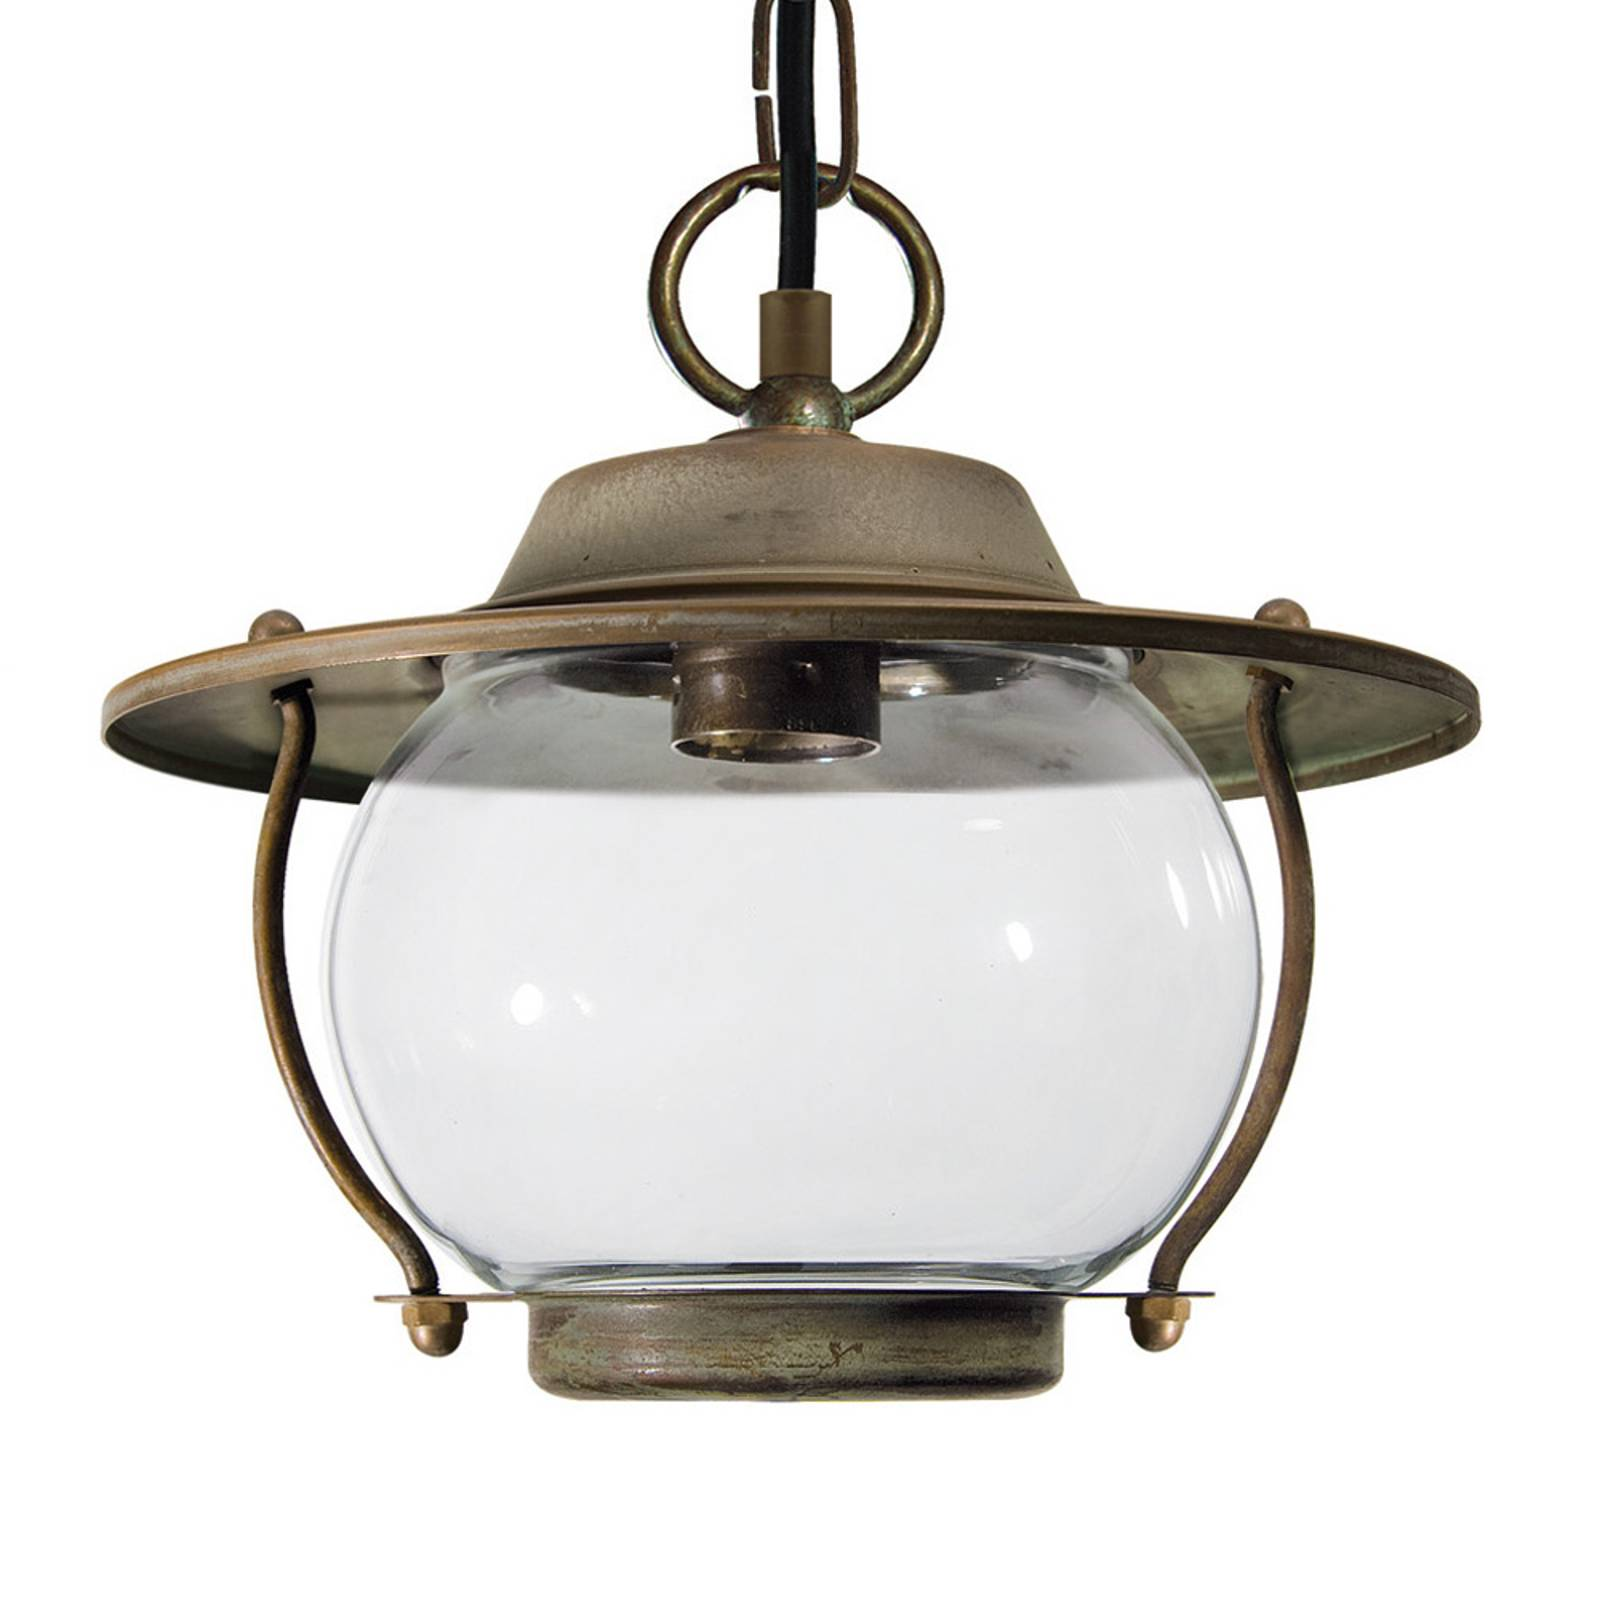 With chain - outdoor hanging light Adessora from Moretti